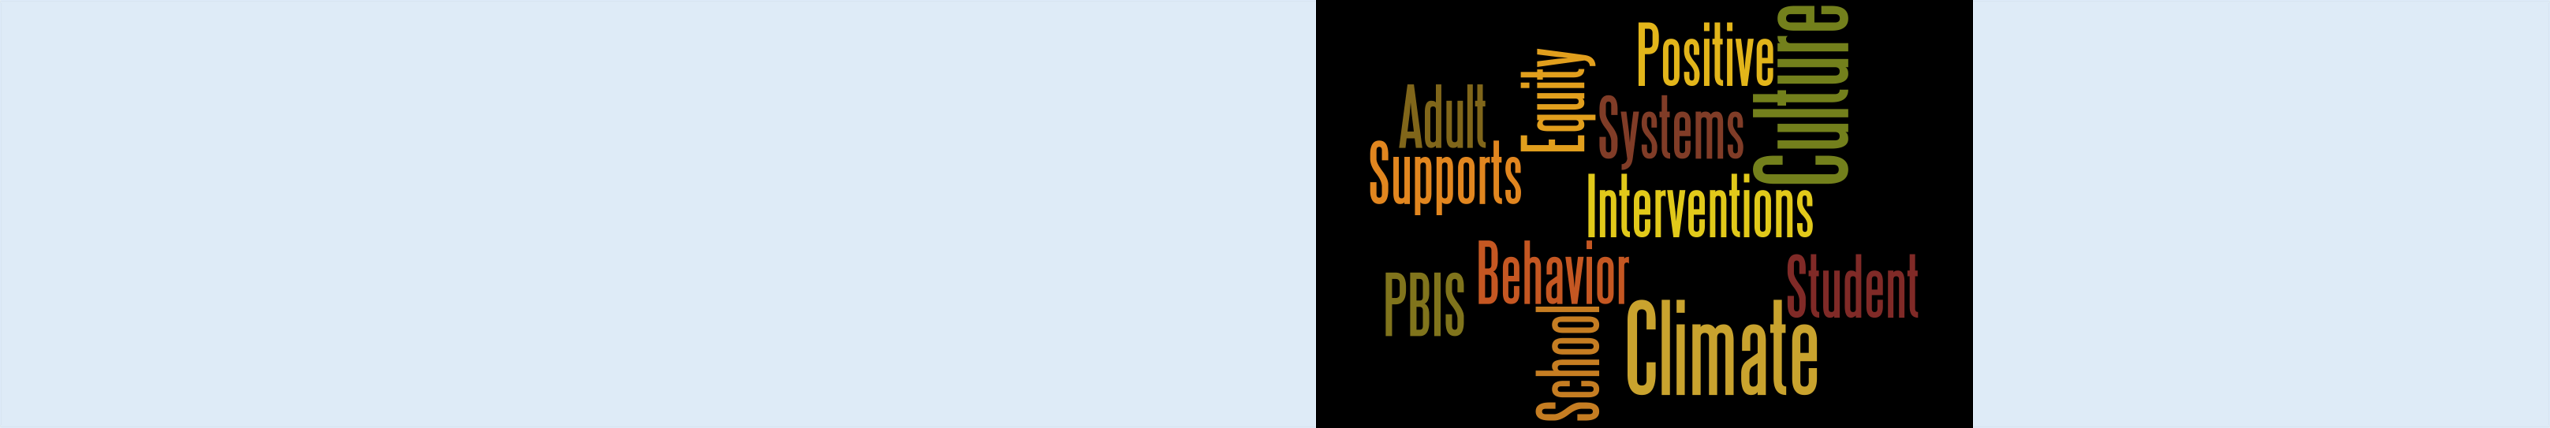 Wordle of descriptors associated with PBIS, for example, the word climate.